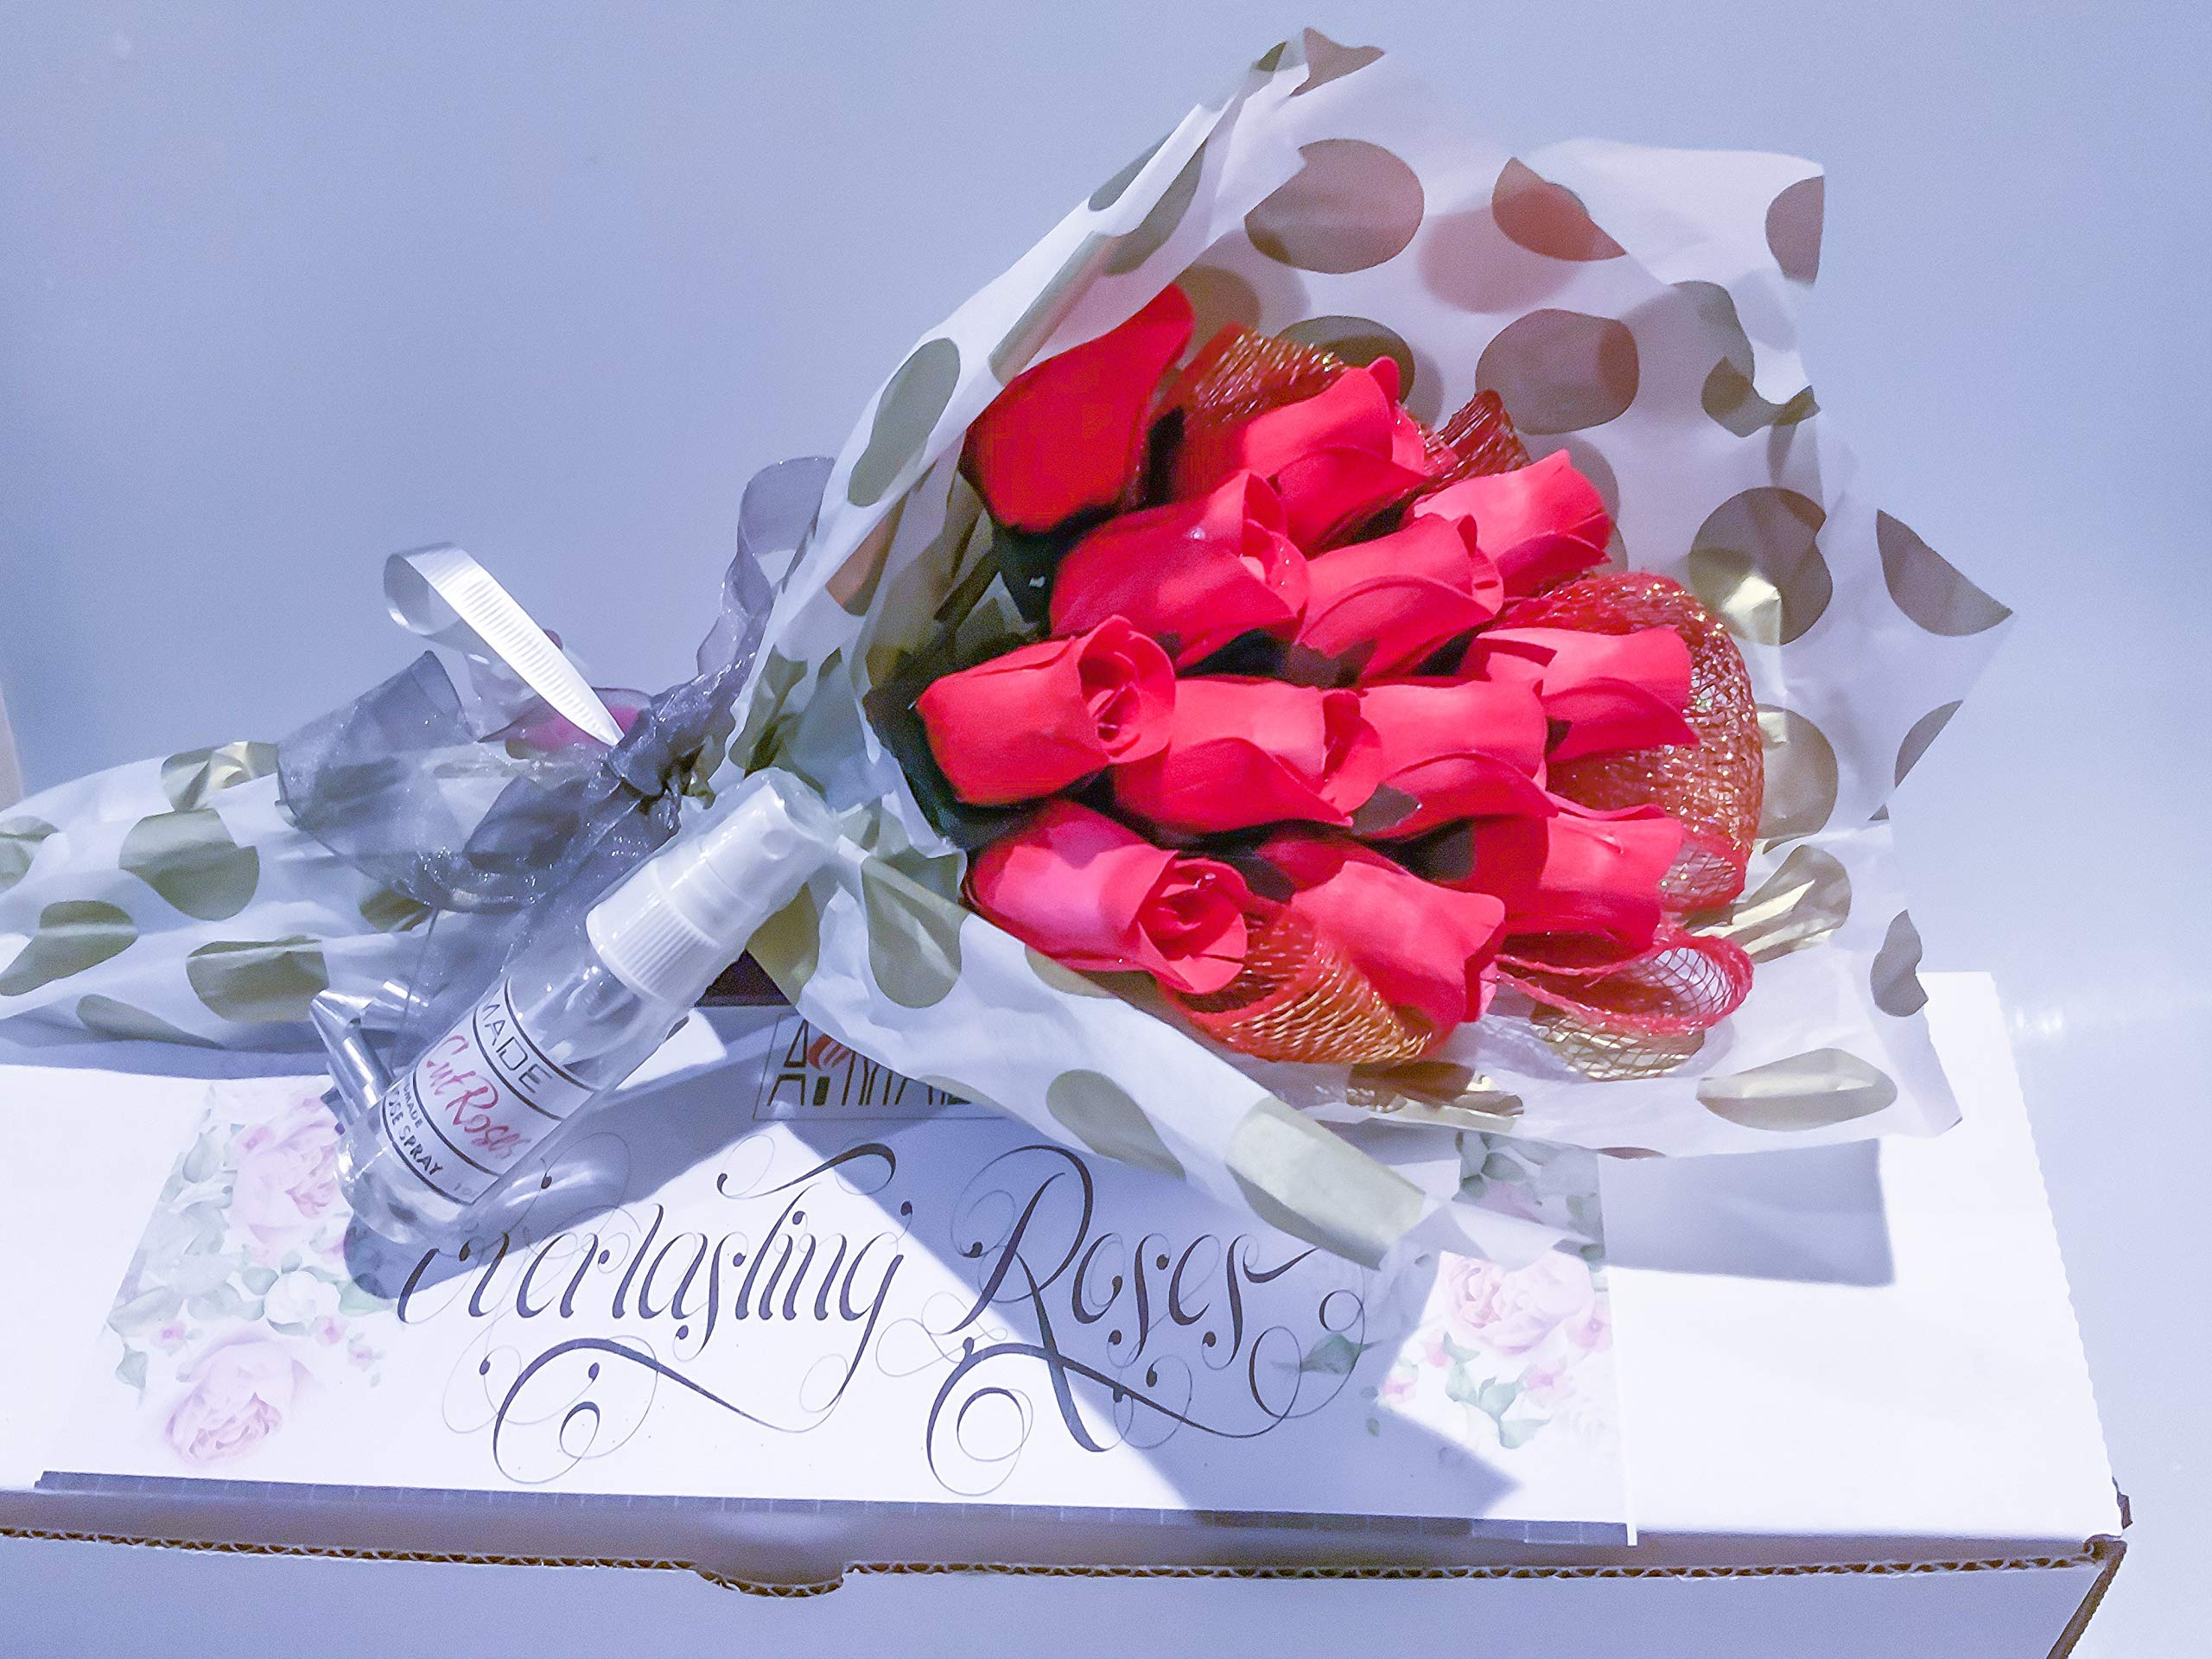 silk flower arrangements dozen red fake rose scented wooden flowers artificial roses with stems flower bouquet with refresher spray in box